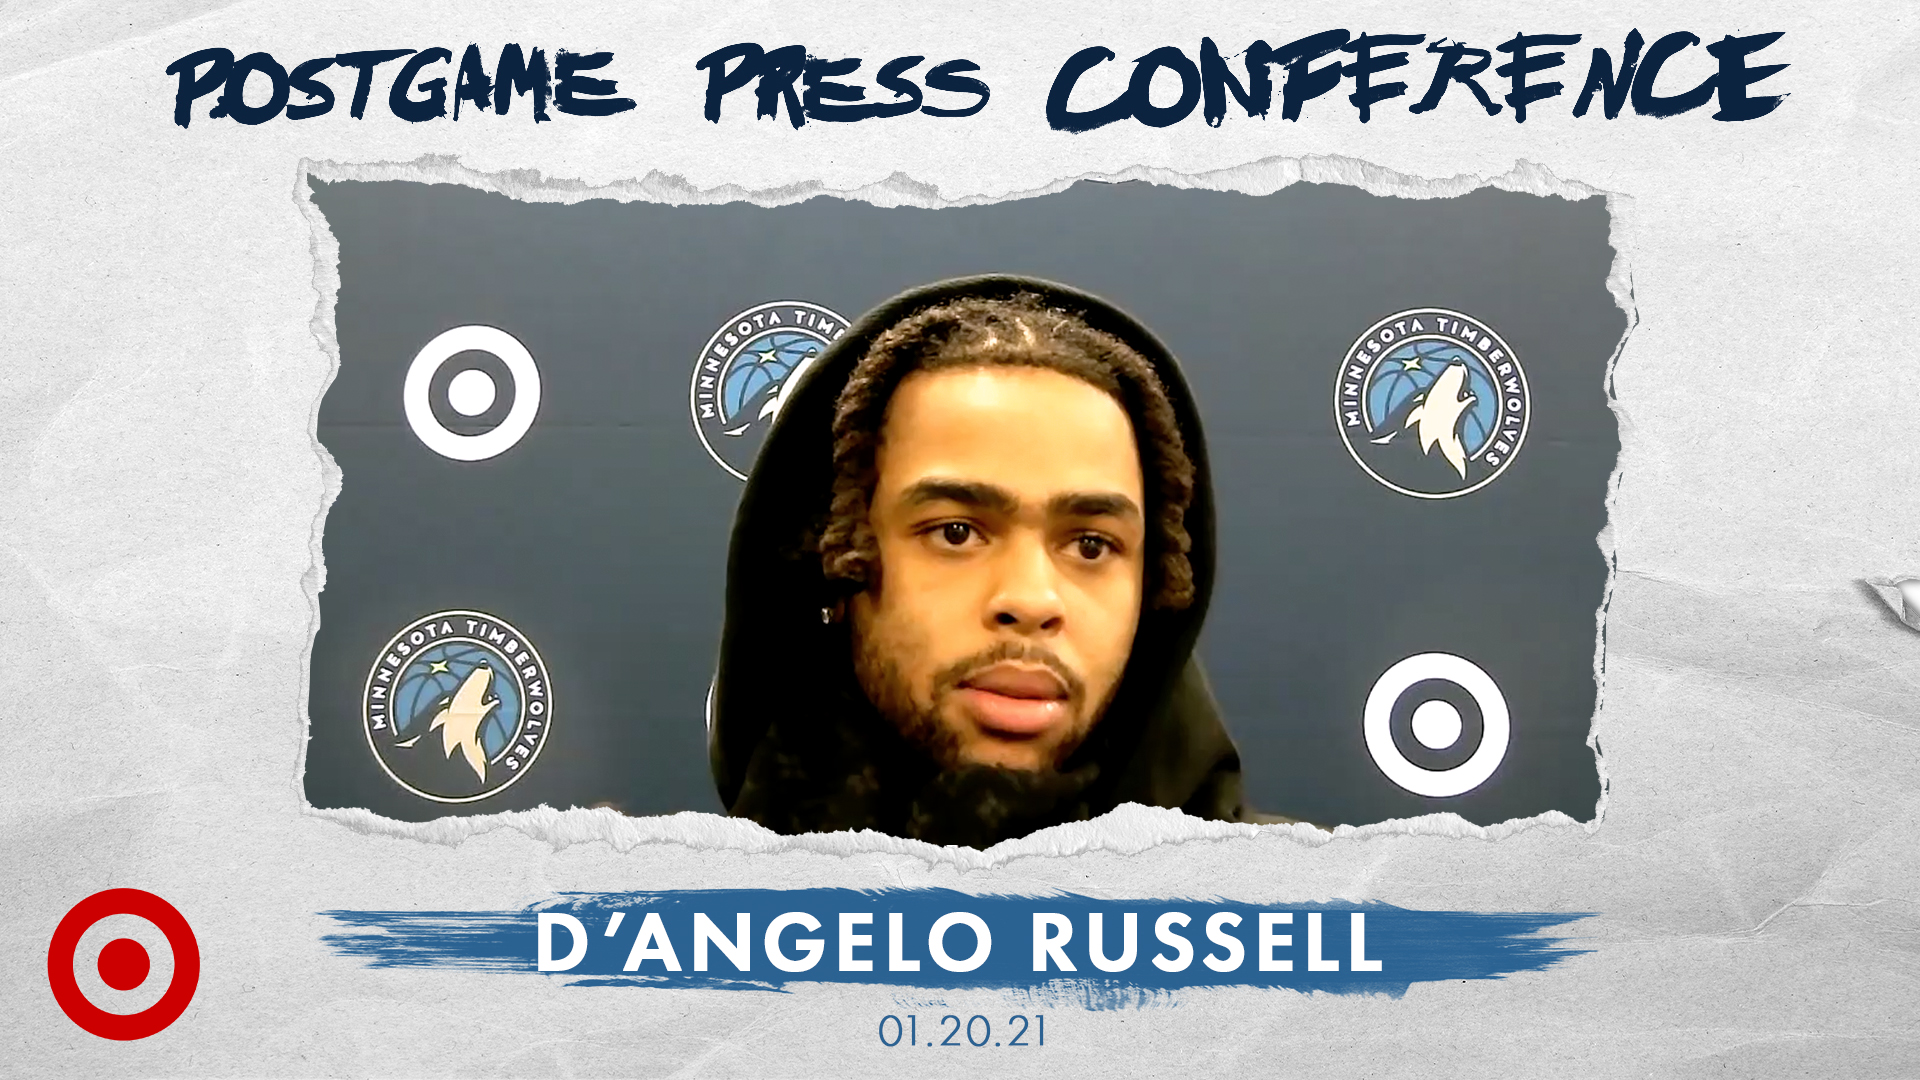 D'Angelo Russell Postgame Press Conference - January 20, 2021